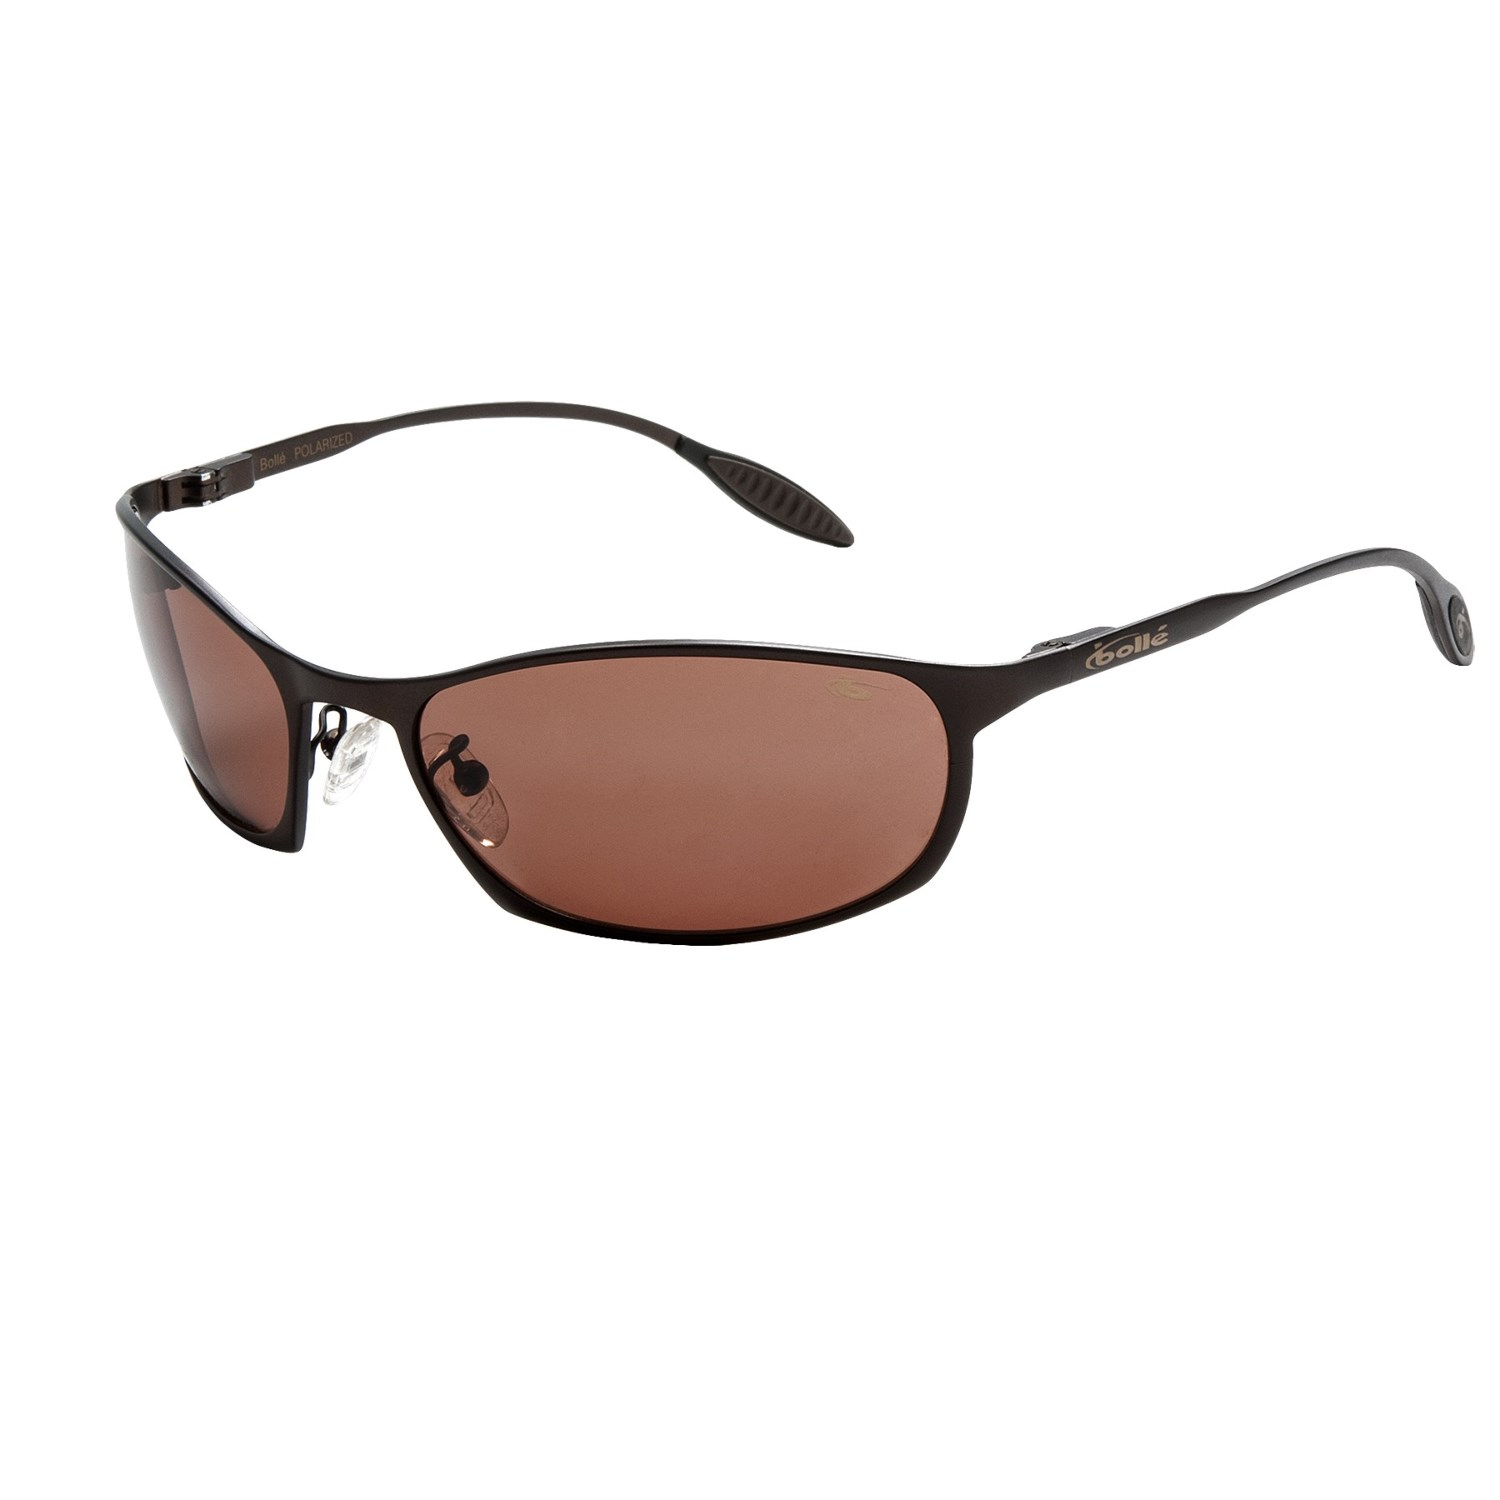 Q2 434730192 together with 462126880 additionally Bolle Montauk Sport Sunglasses Polarized  p 2317t also Internal besides Controlling Cat Scratching. on cat s pads